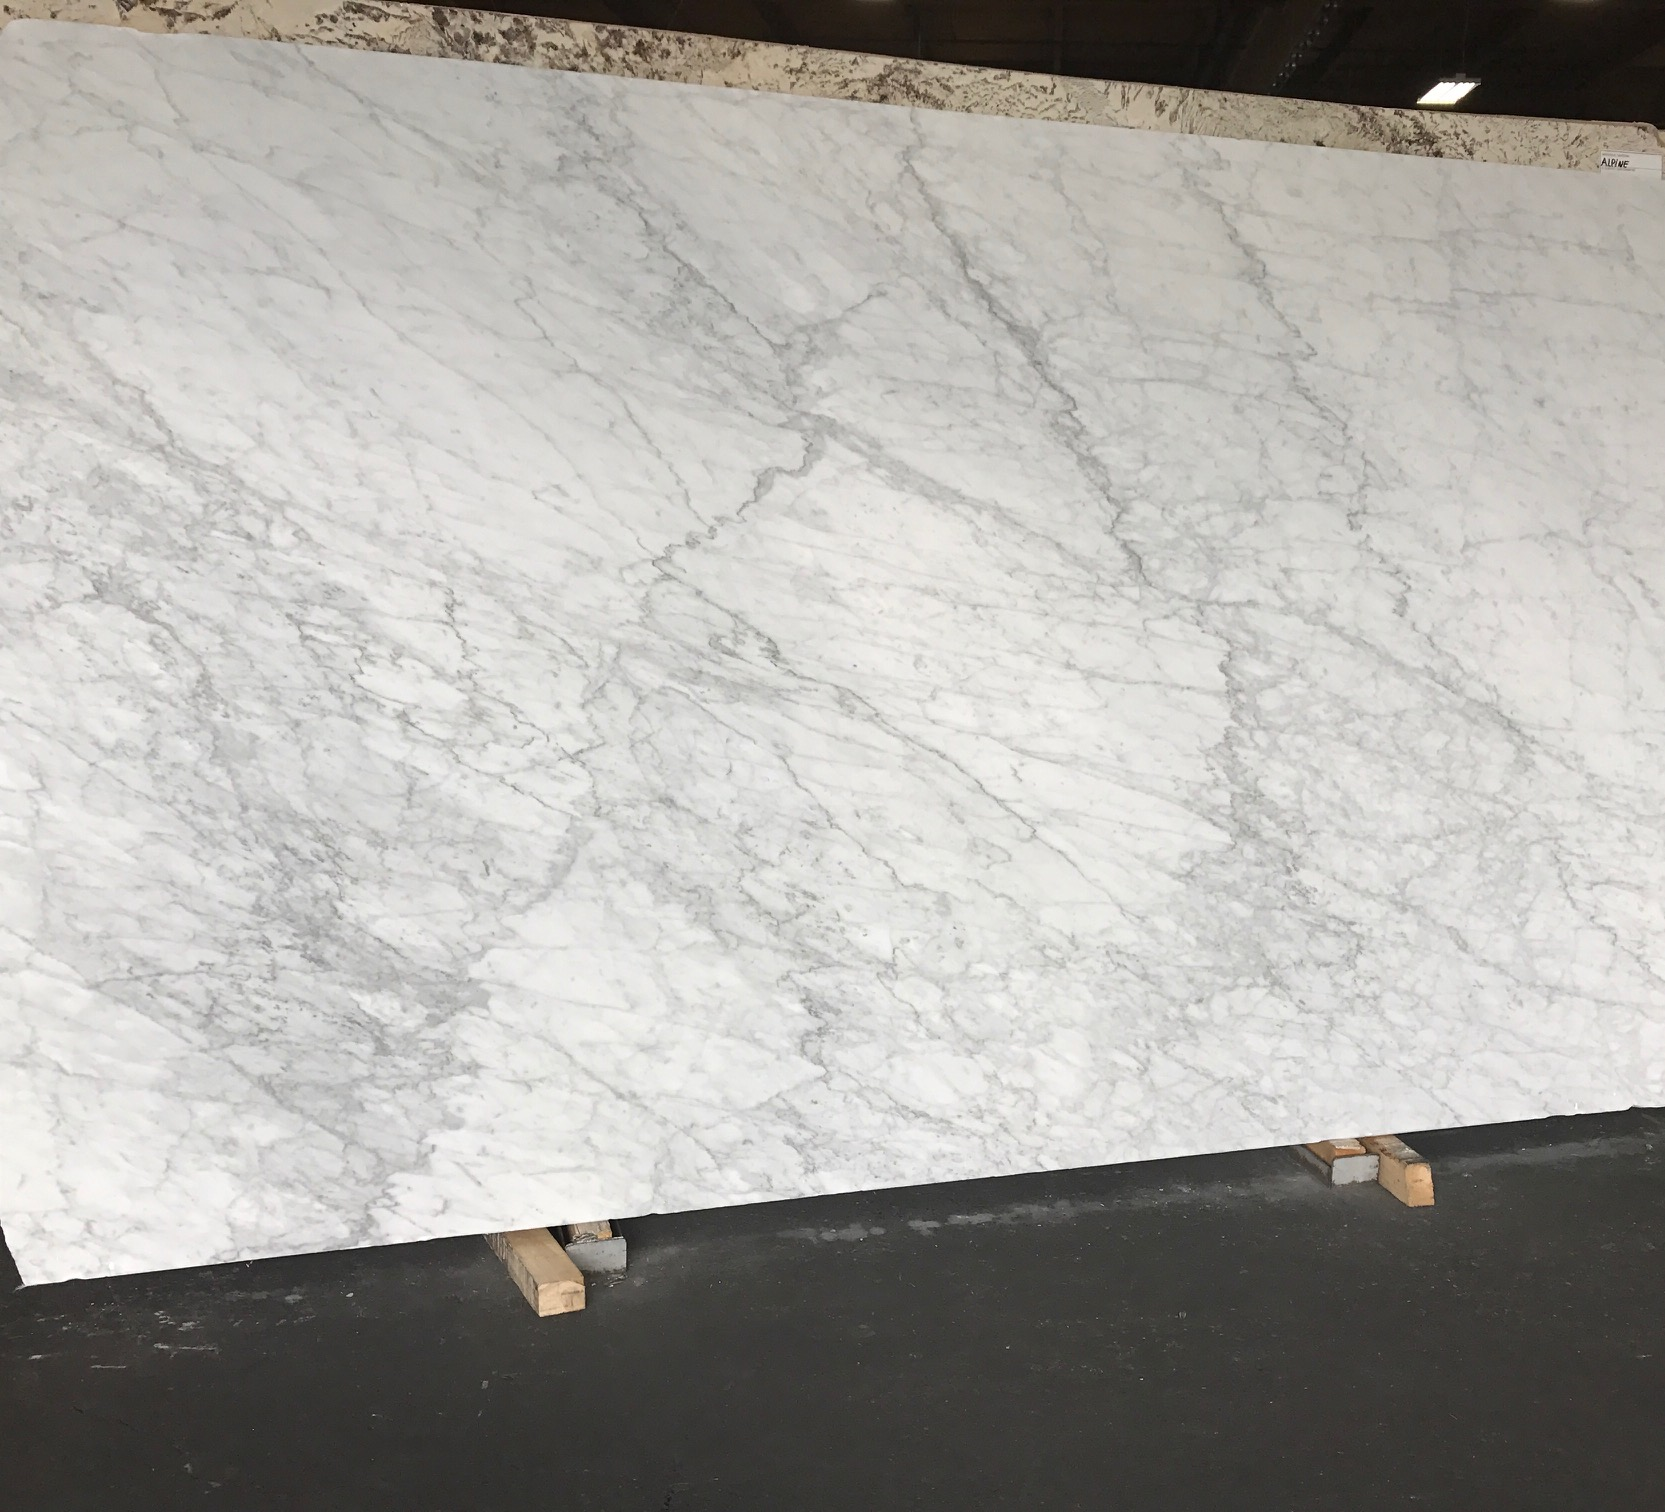 A trip to the stone yard NEVER fails to get my creativity boiling!This marble slab is from the same block that we tagged for an amazing client in Snohomish. She's seriously the sweetest, is trusting and has impeccable taste.